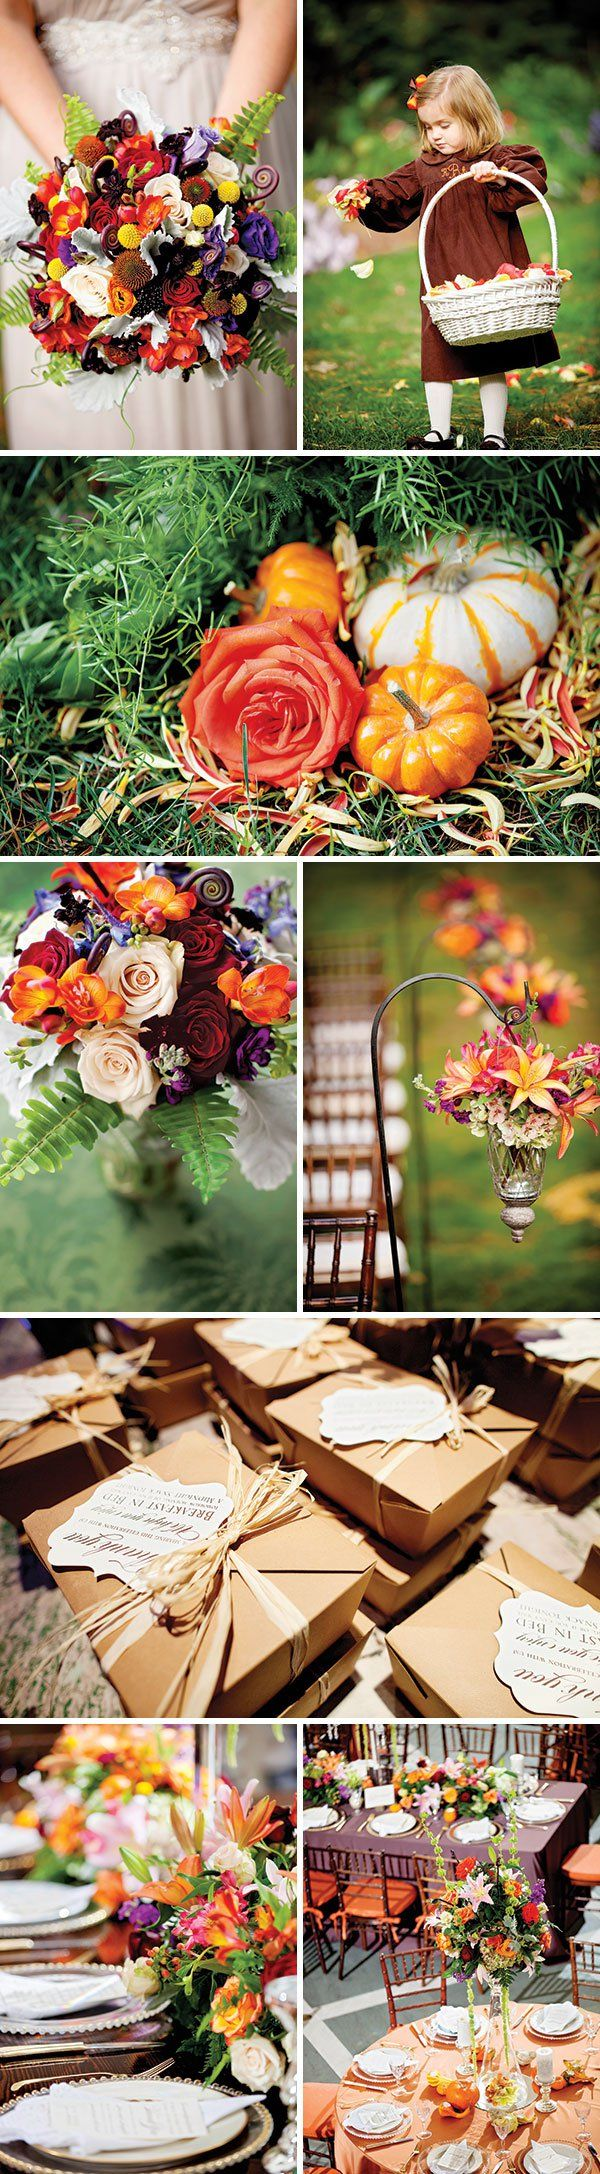 There is something so warm and cozy about fall, which makes it a perfect time of year for your wedding